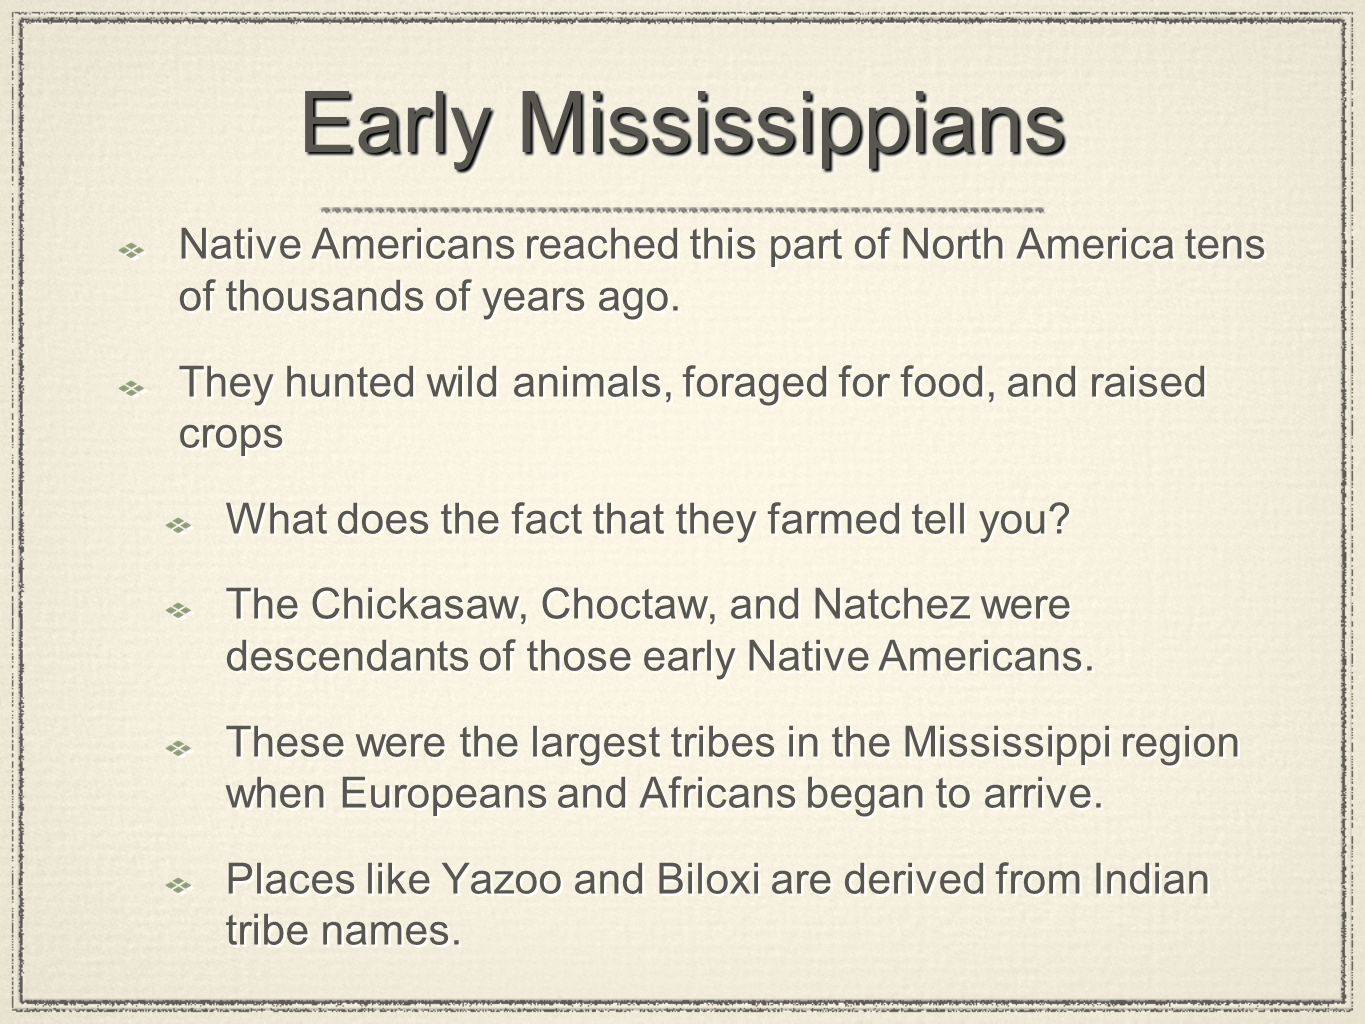 Early Mississippians Native Americans reached this part of North America tens of thousands of years ago.